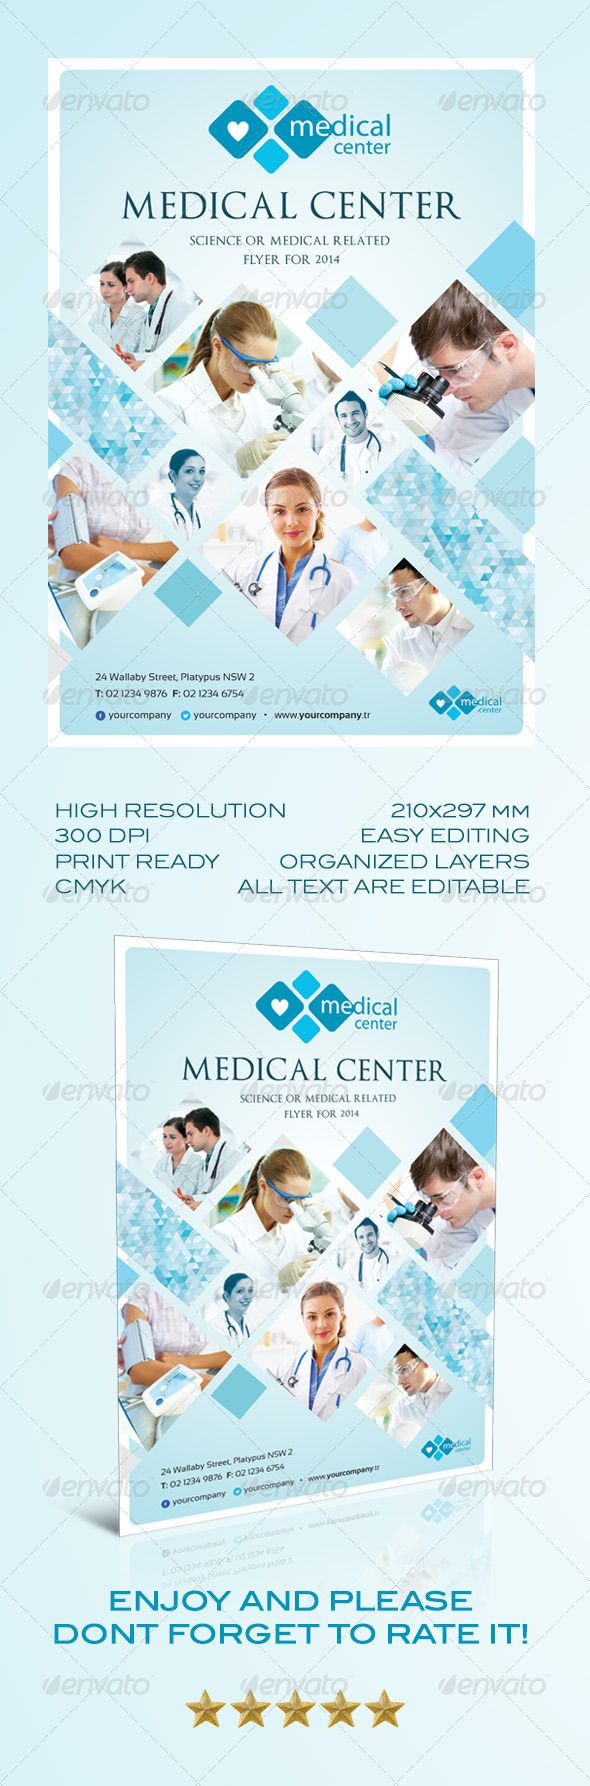 Medical Flyer Template — Photoshop PSD #maintenance #business • Available here → https://graphicriver.net/item/medical-flyer-template/6733834?ref=pxcr